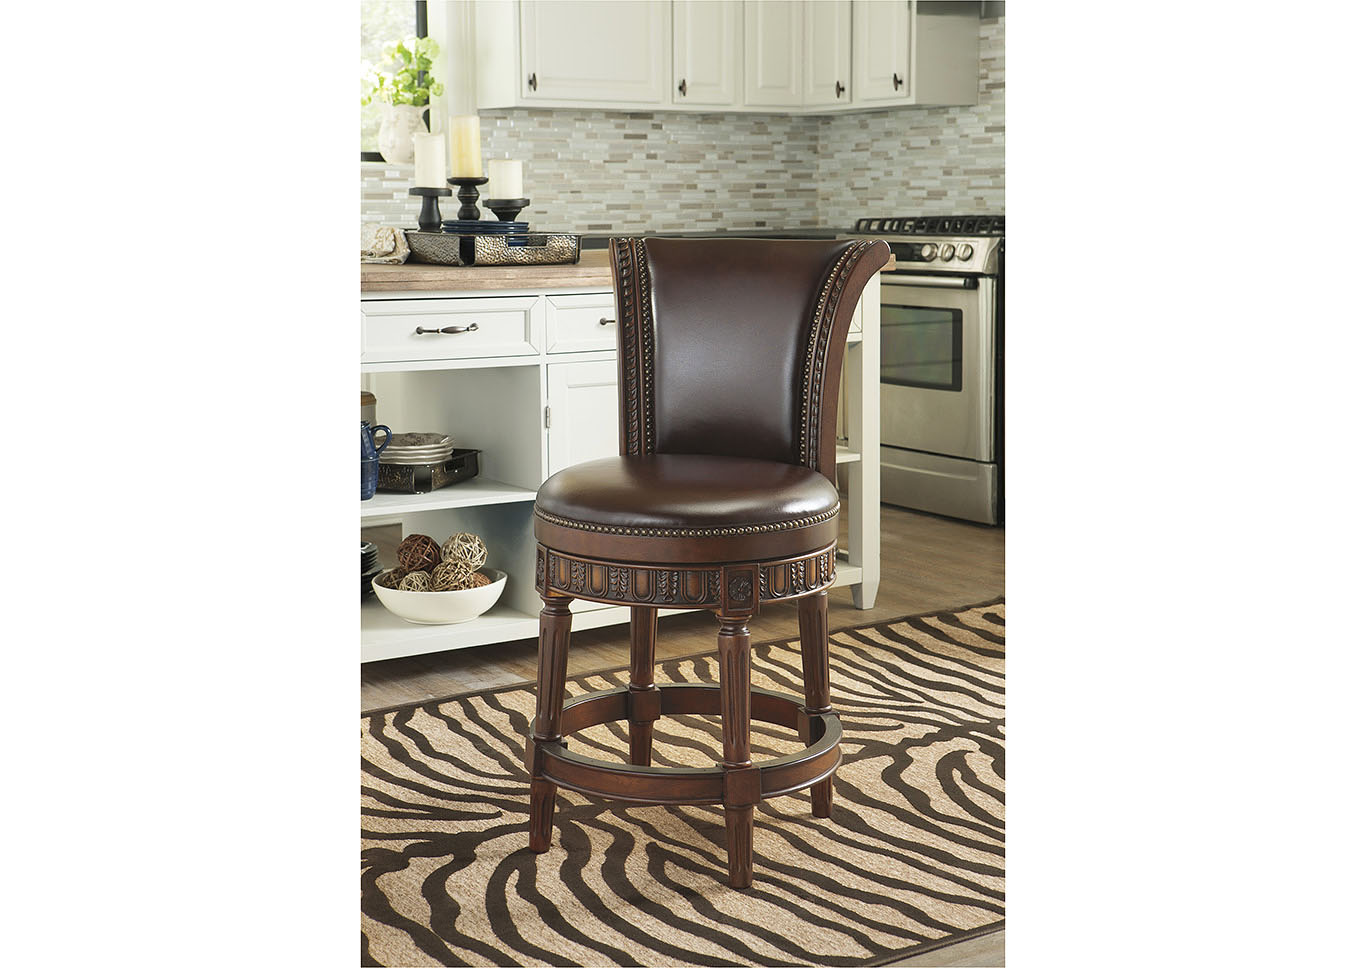 North Shore Dark Brown Upholstered Swivel Barstool,Millennium